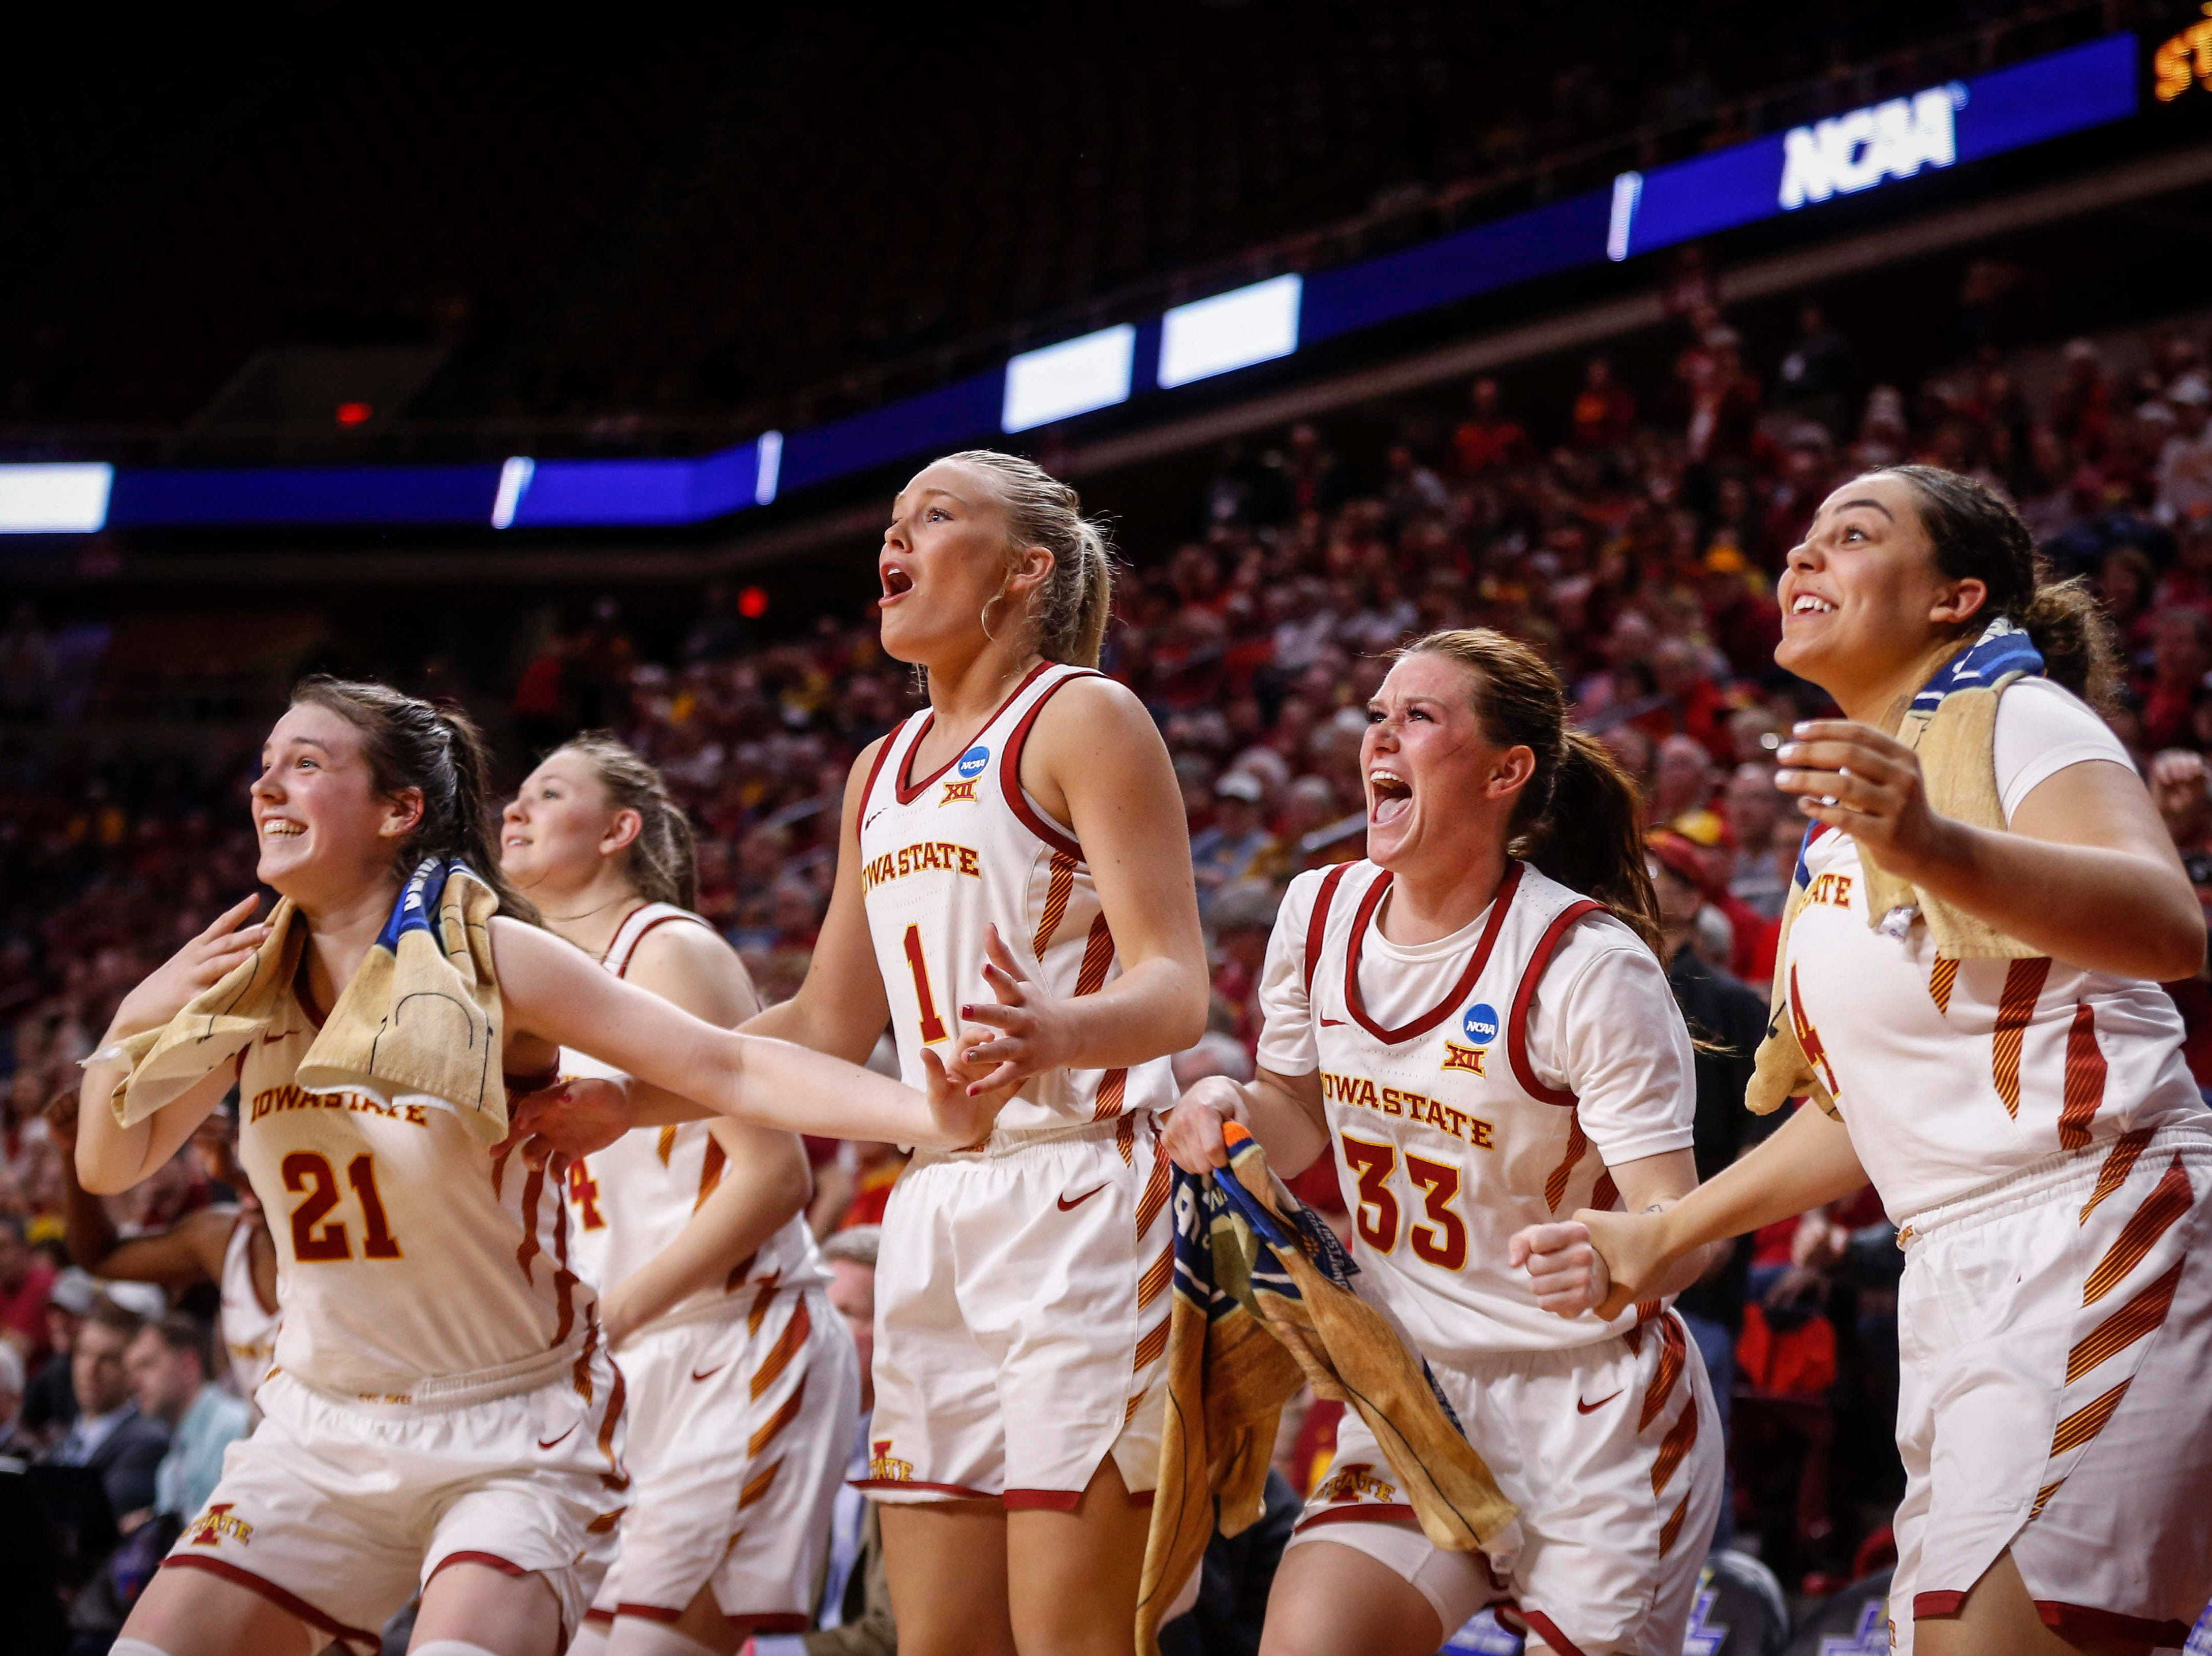 Members of the Iowa State women's basketball team celebrate an NCAA first round win against New Mexico State on Saturday, March 23, 2019, at Hilton Coliseum in Ames.